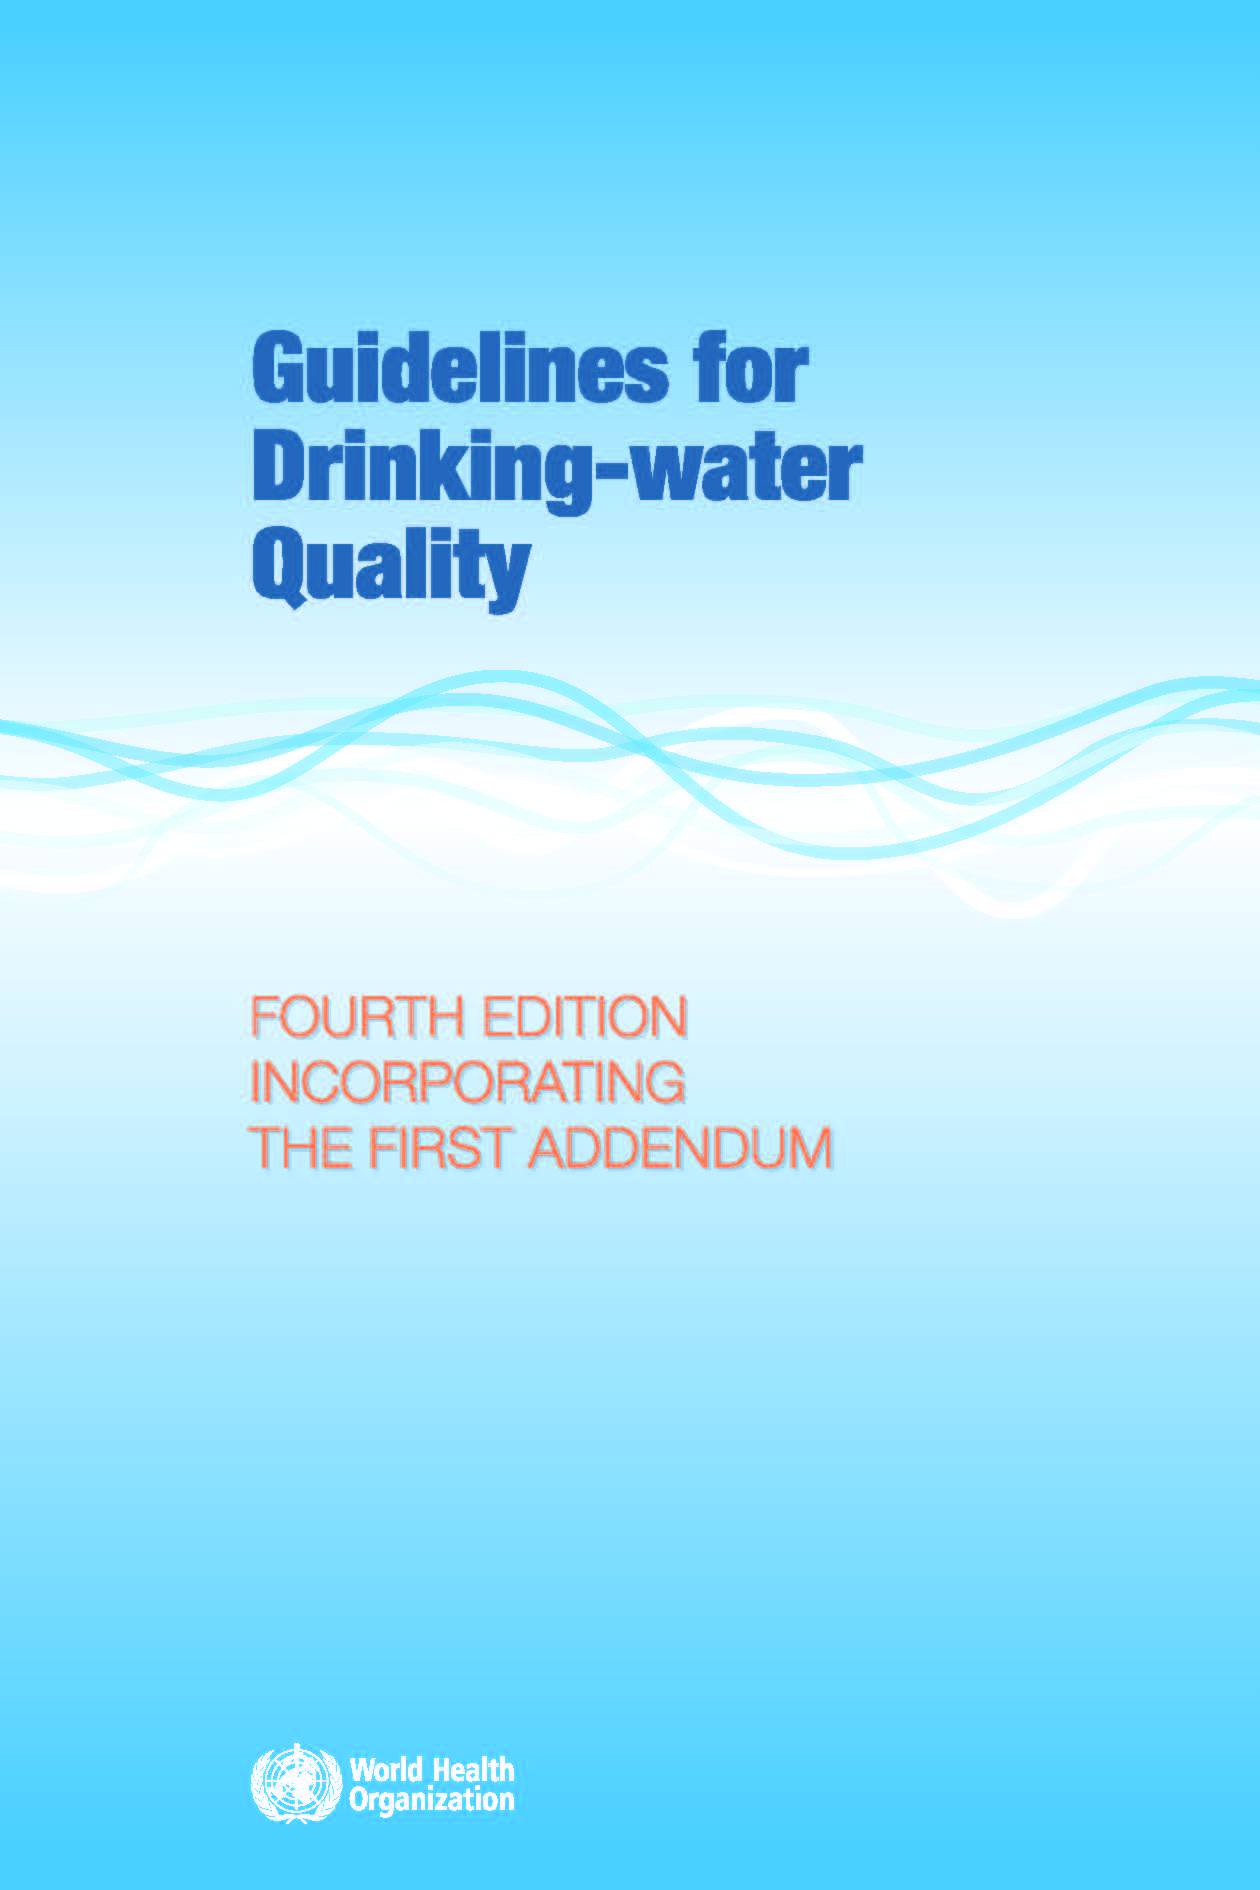 WHO Guidelines for Drinking Water Quality